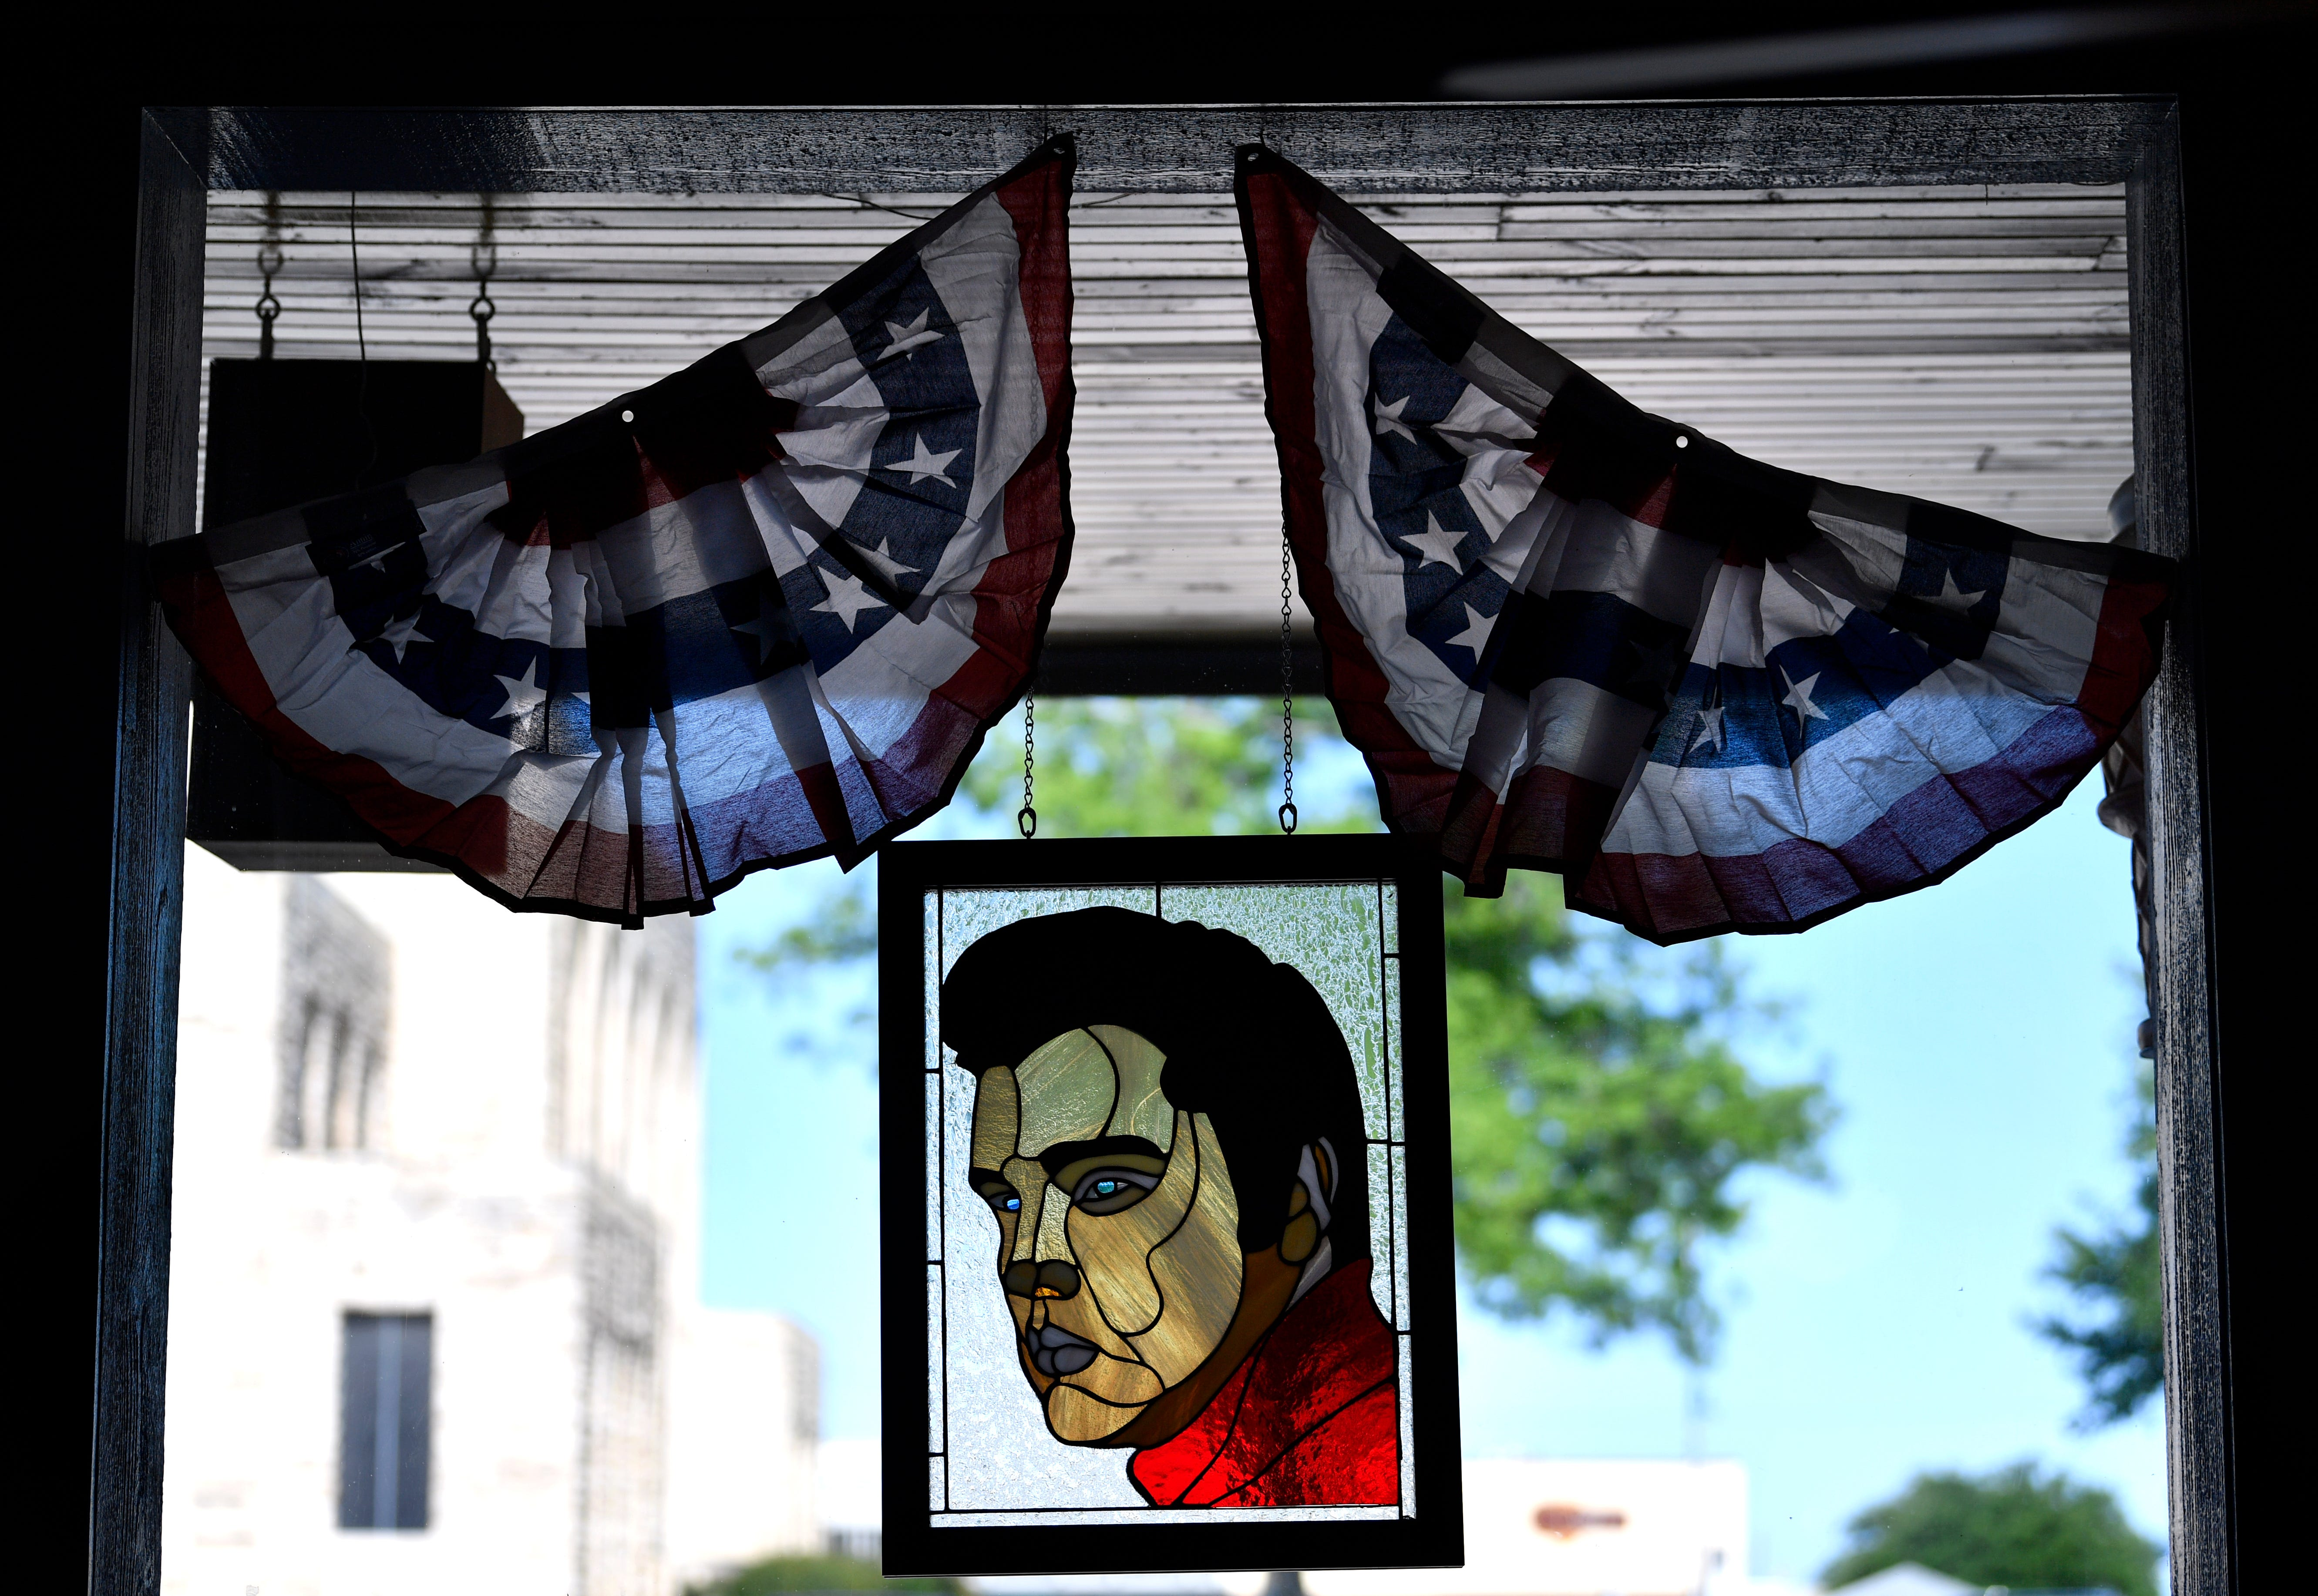 A stained glass portrait of Elvis Presley hangs in the wind of the Soda Shop.